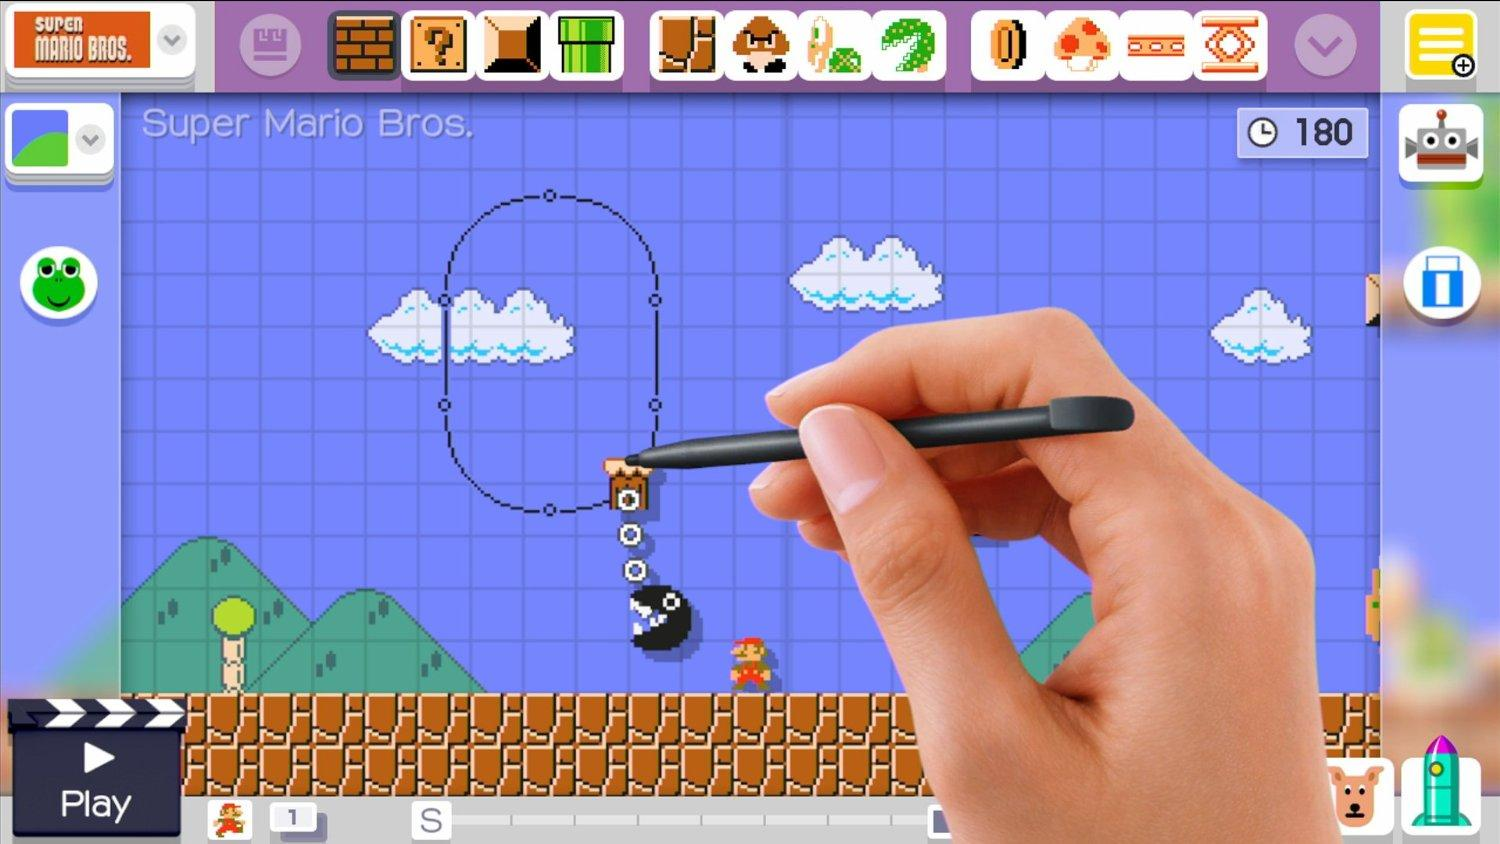 The game gives players a creative look into the Super Mario world.